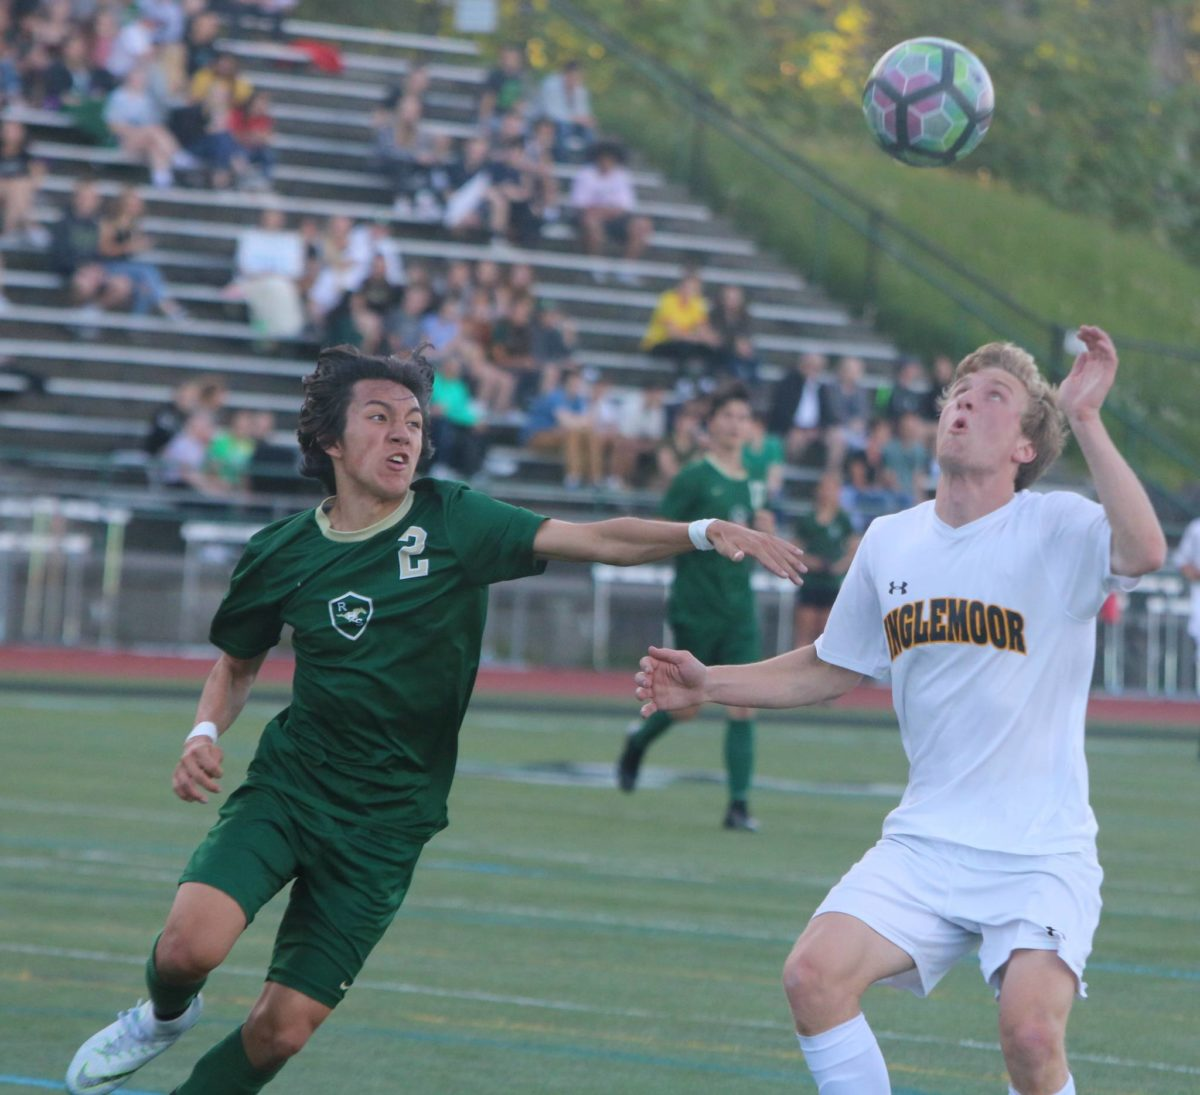 Senior Gabe Fahling heads the ball during the Vikings match versus Redmond High on May 7, they would go on to win 1-0.